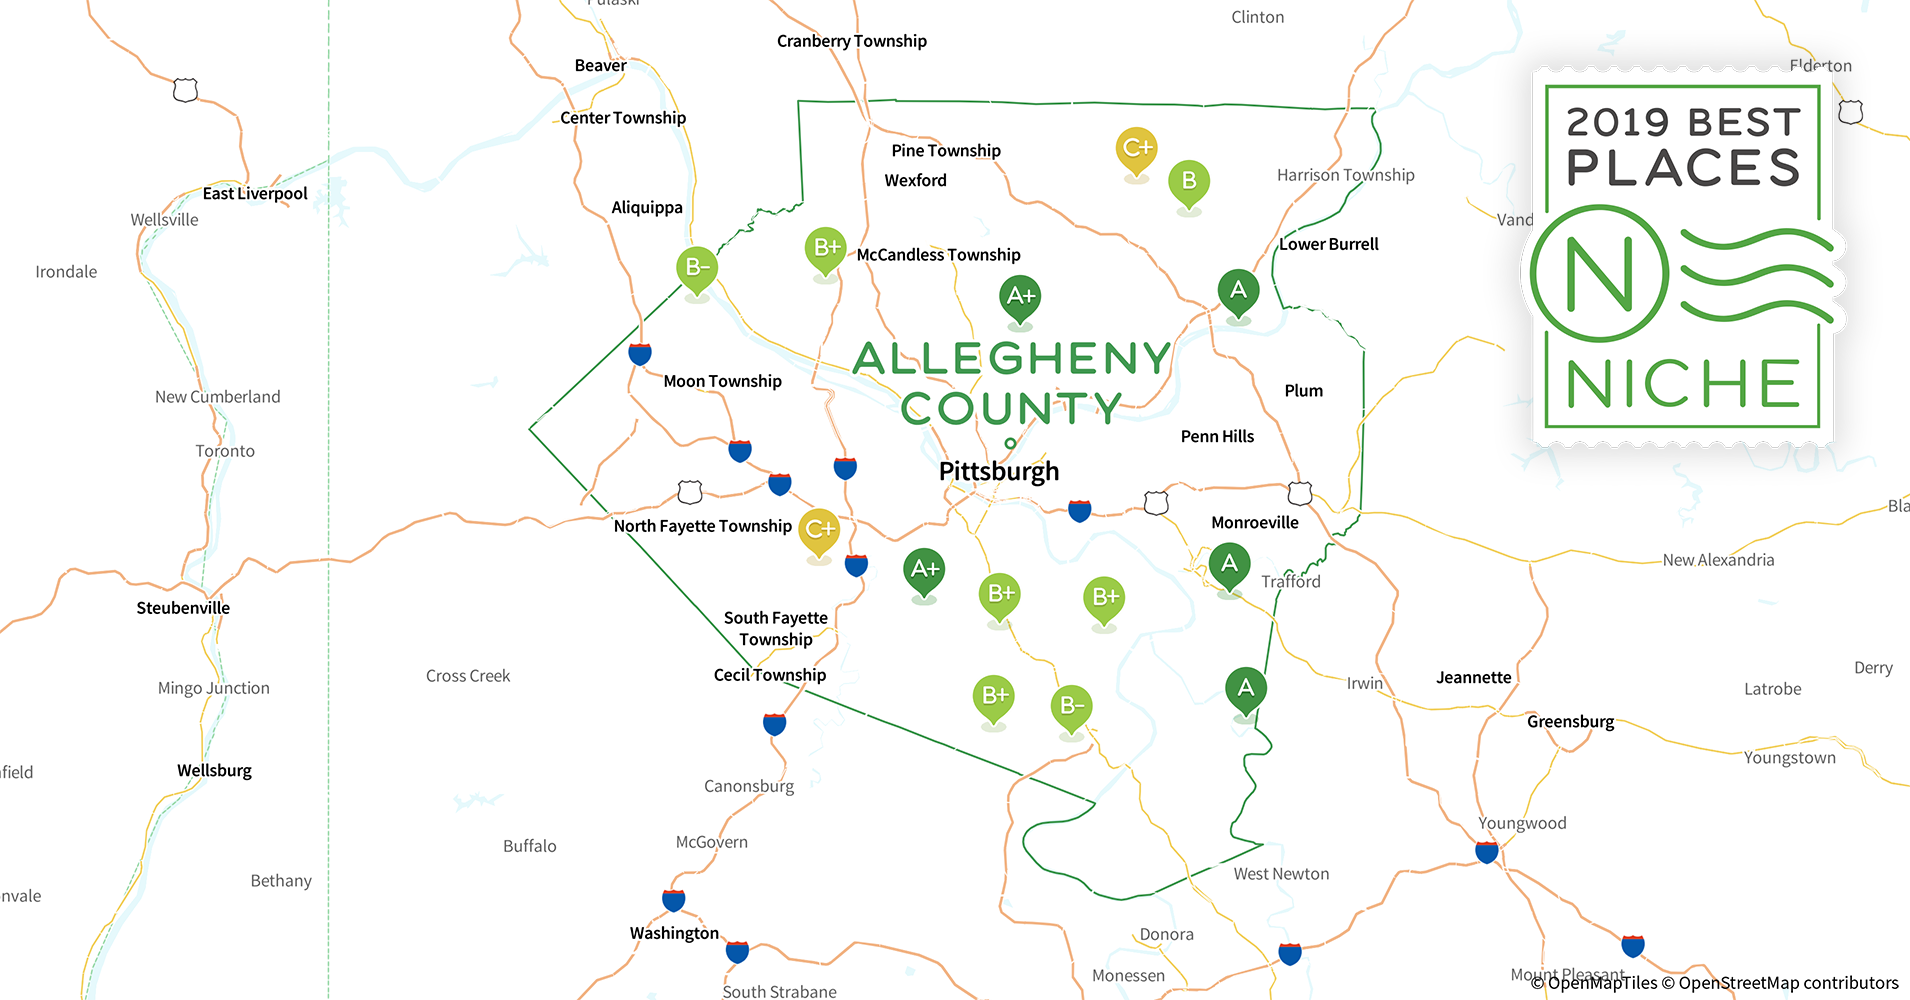 2019 Best Places to Live in Allegheny County, PA - Niche